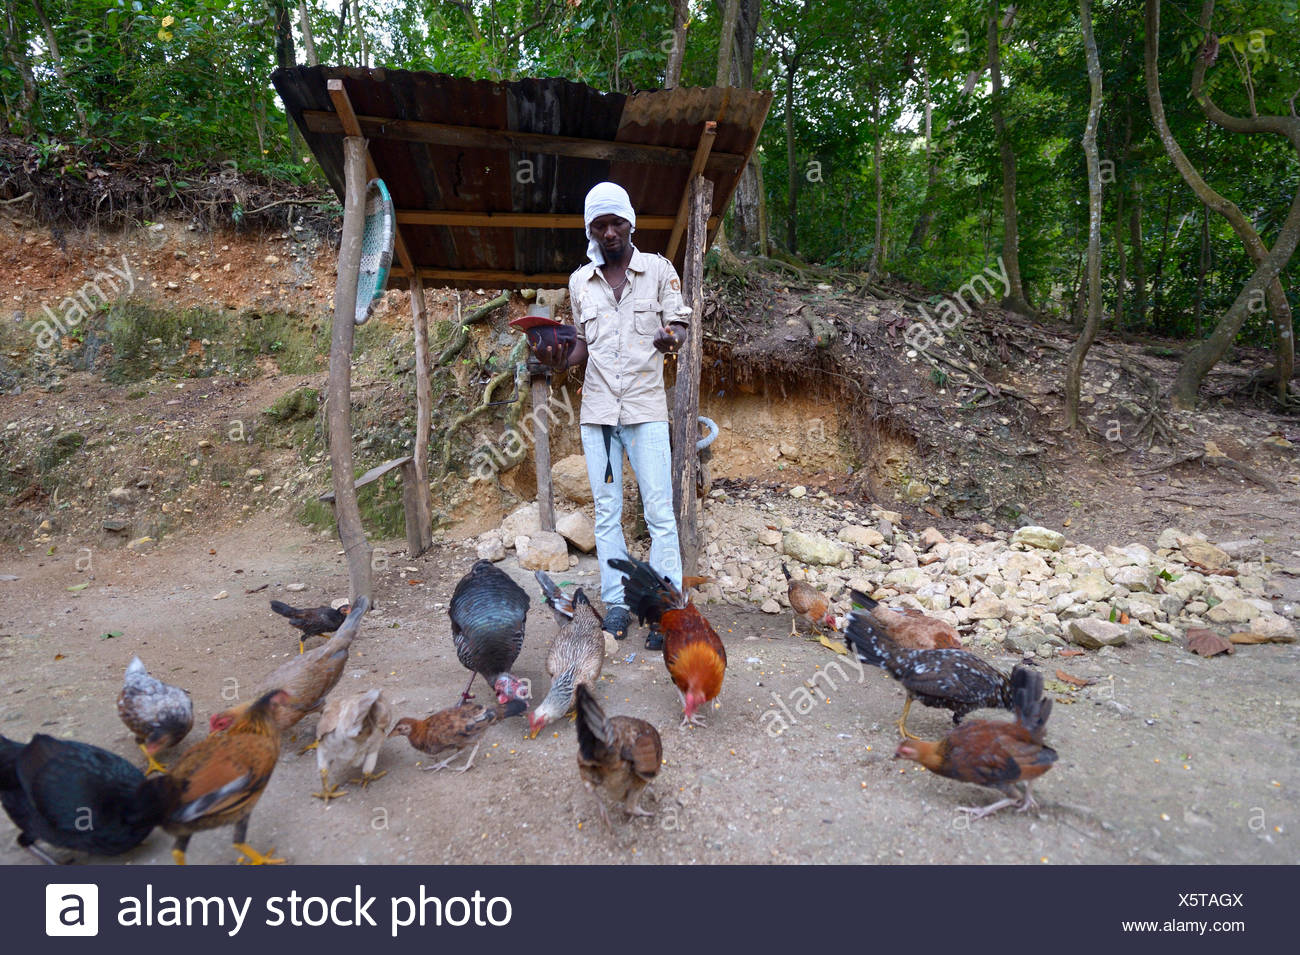 Man feeding his chickens, Riviere Froide, Ouest Department, Haiti Stock Photo